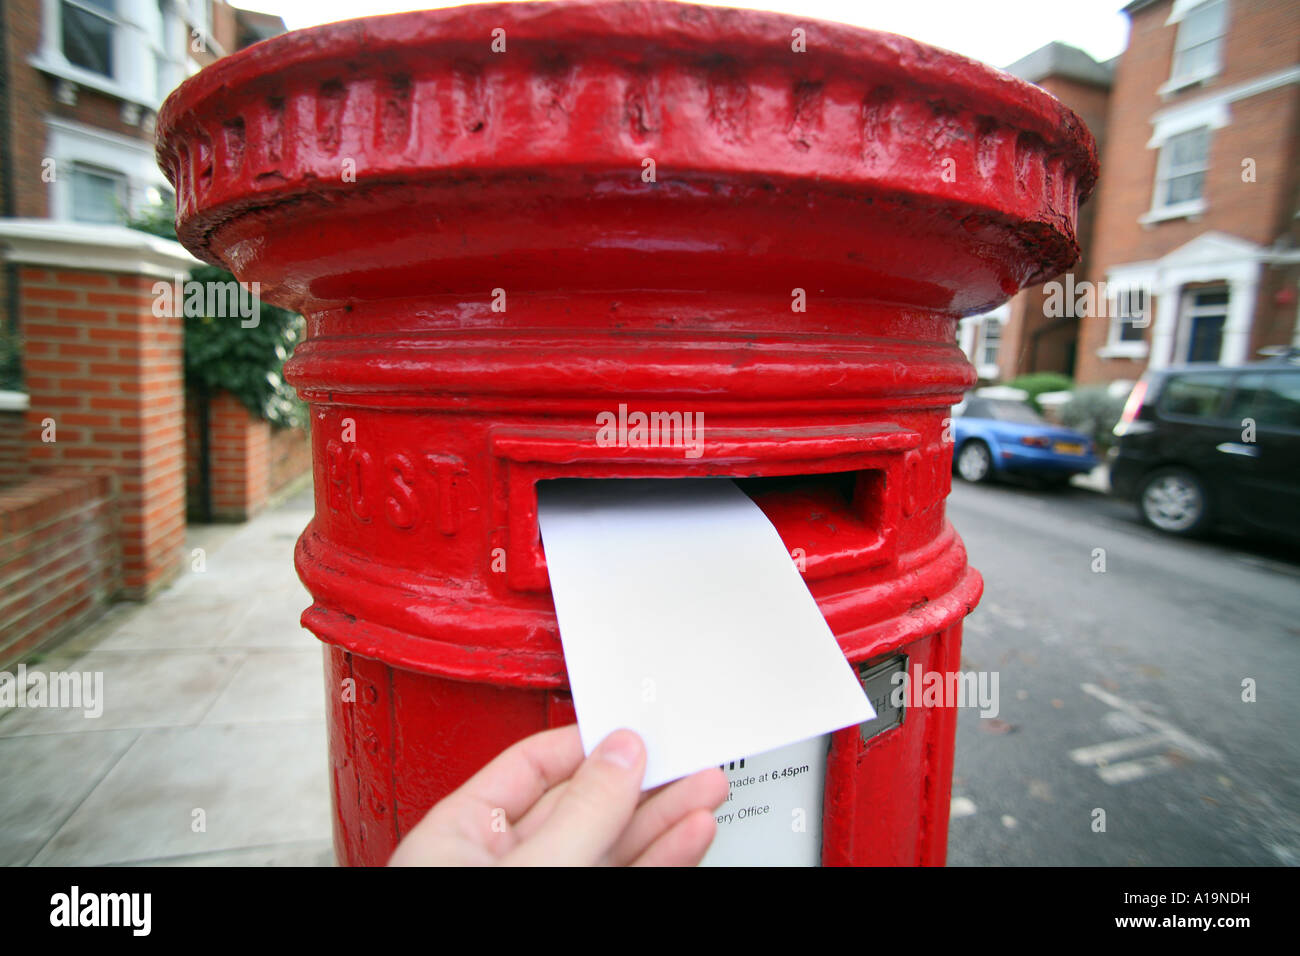 posting letter in UK Postbox - Stock Image